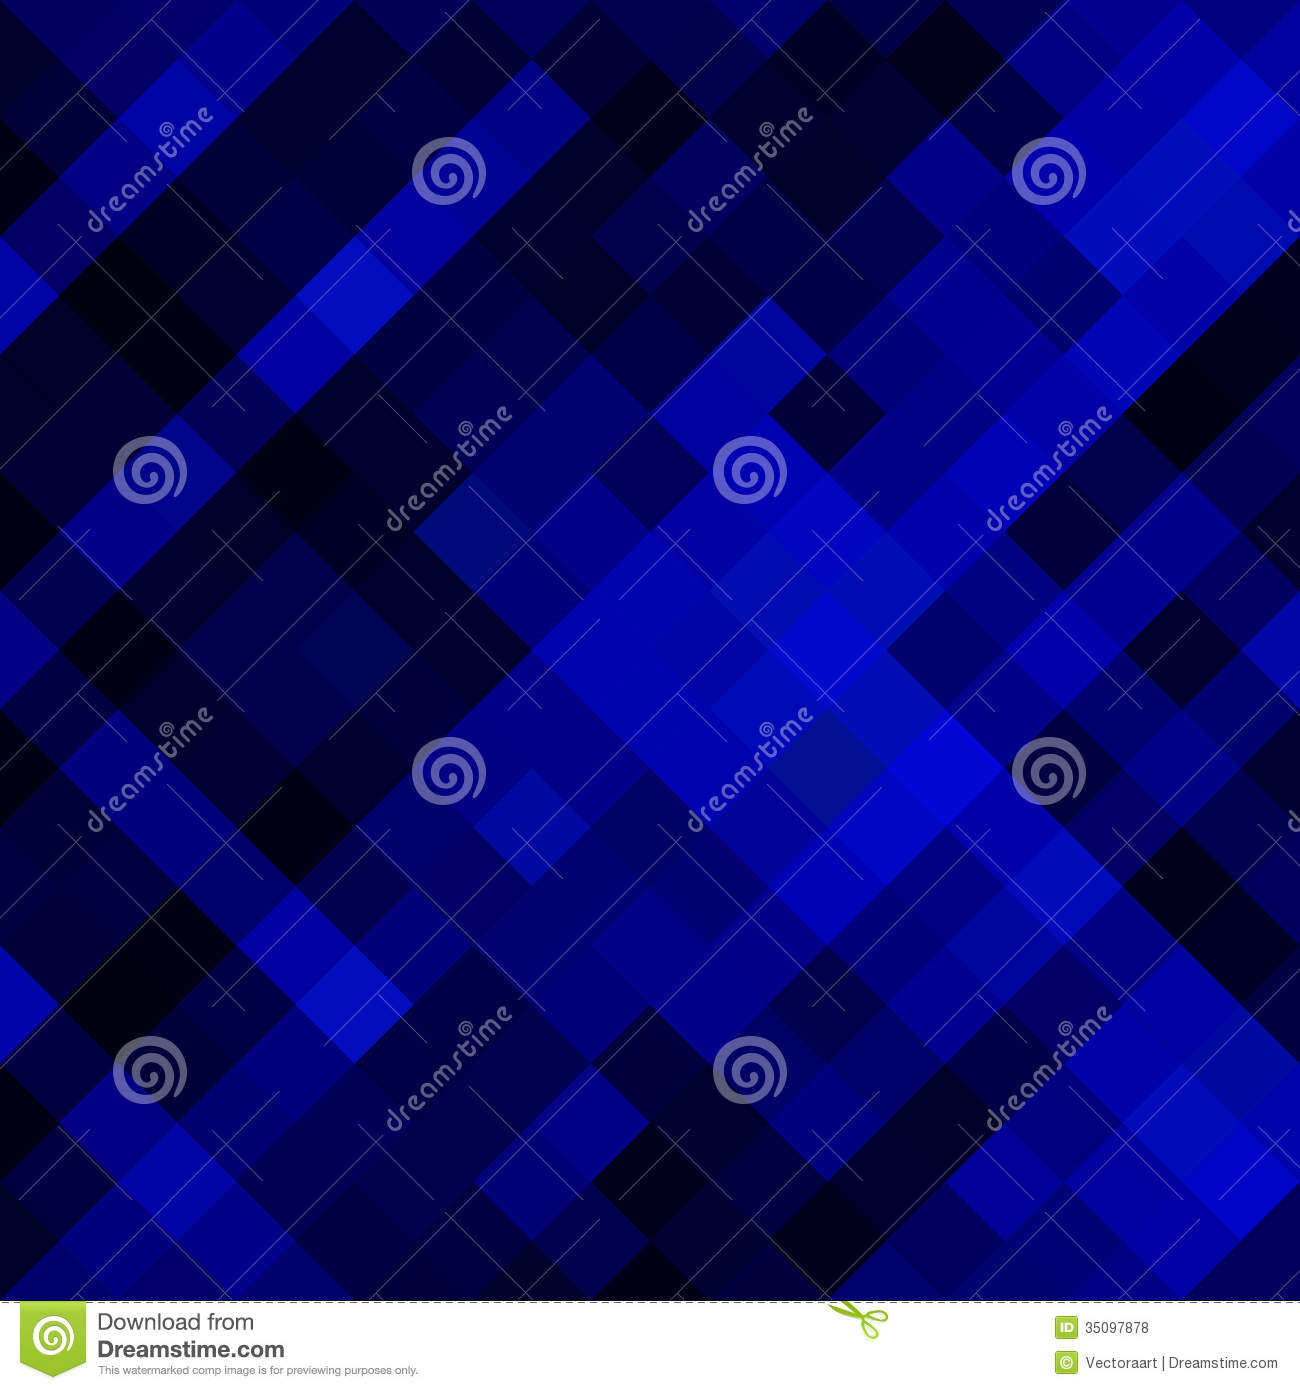 Blue square pattern background - photo#20